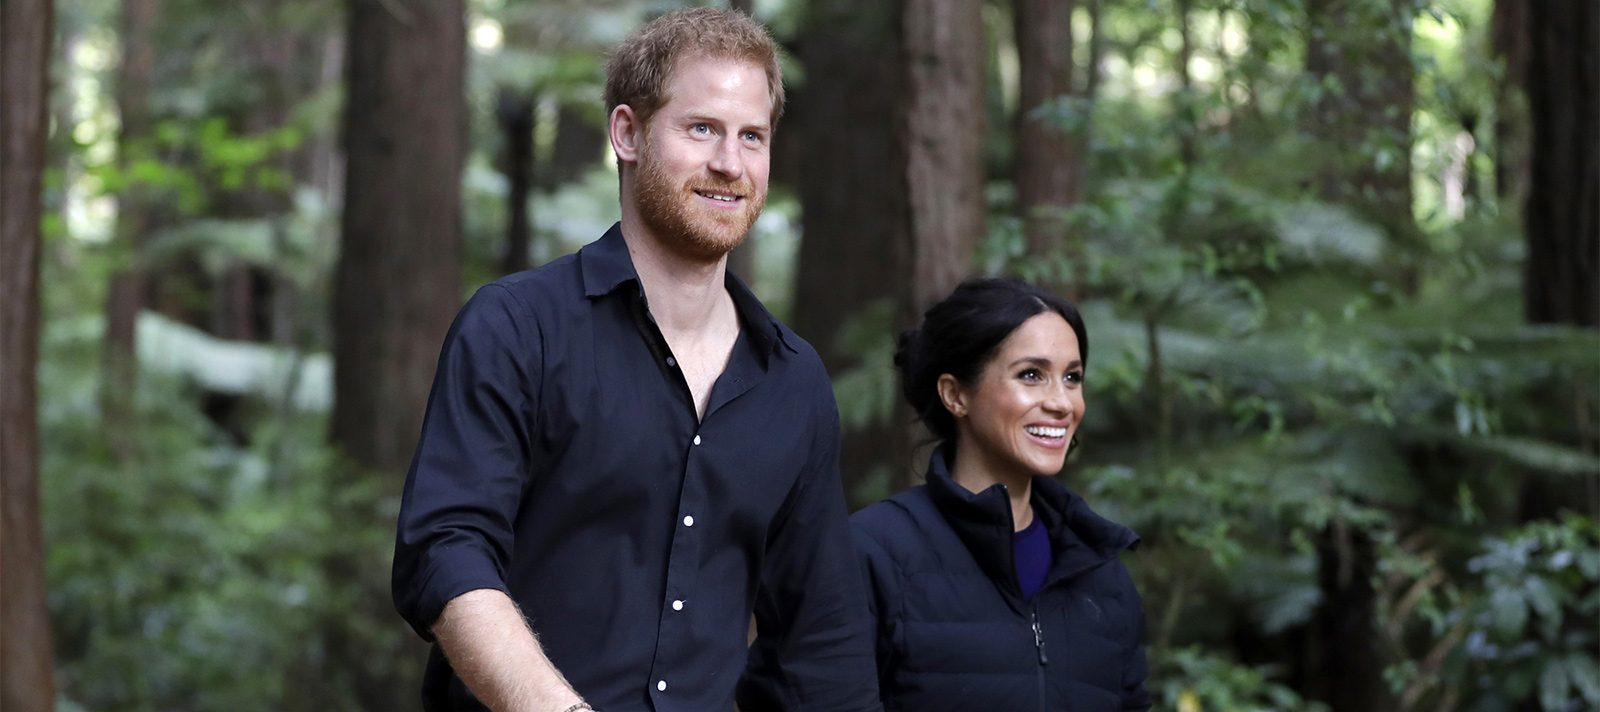 Meghan and Harry, Duke and Duchess of Sussex, at Rotorua's Redwoods Treewalk, marking the end of their 16-day 2018 Oceania tour.